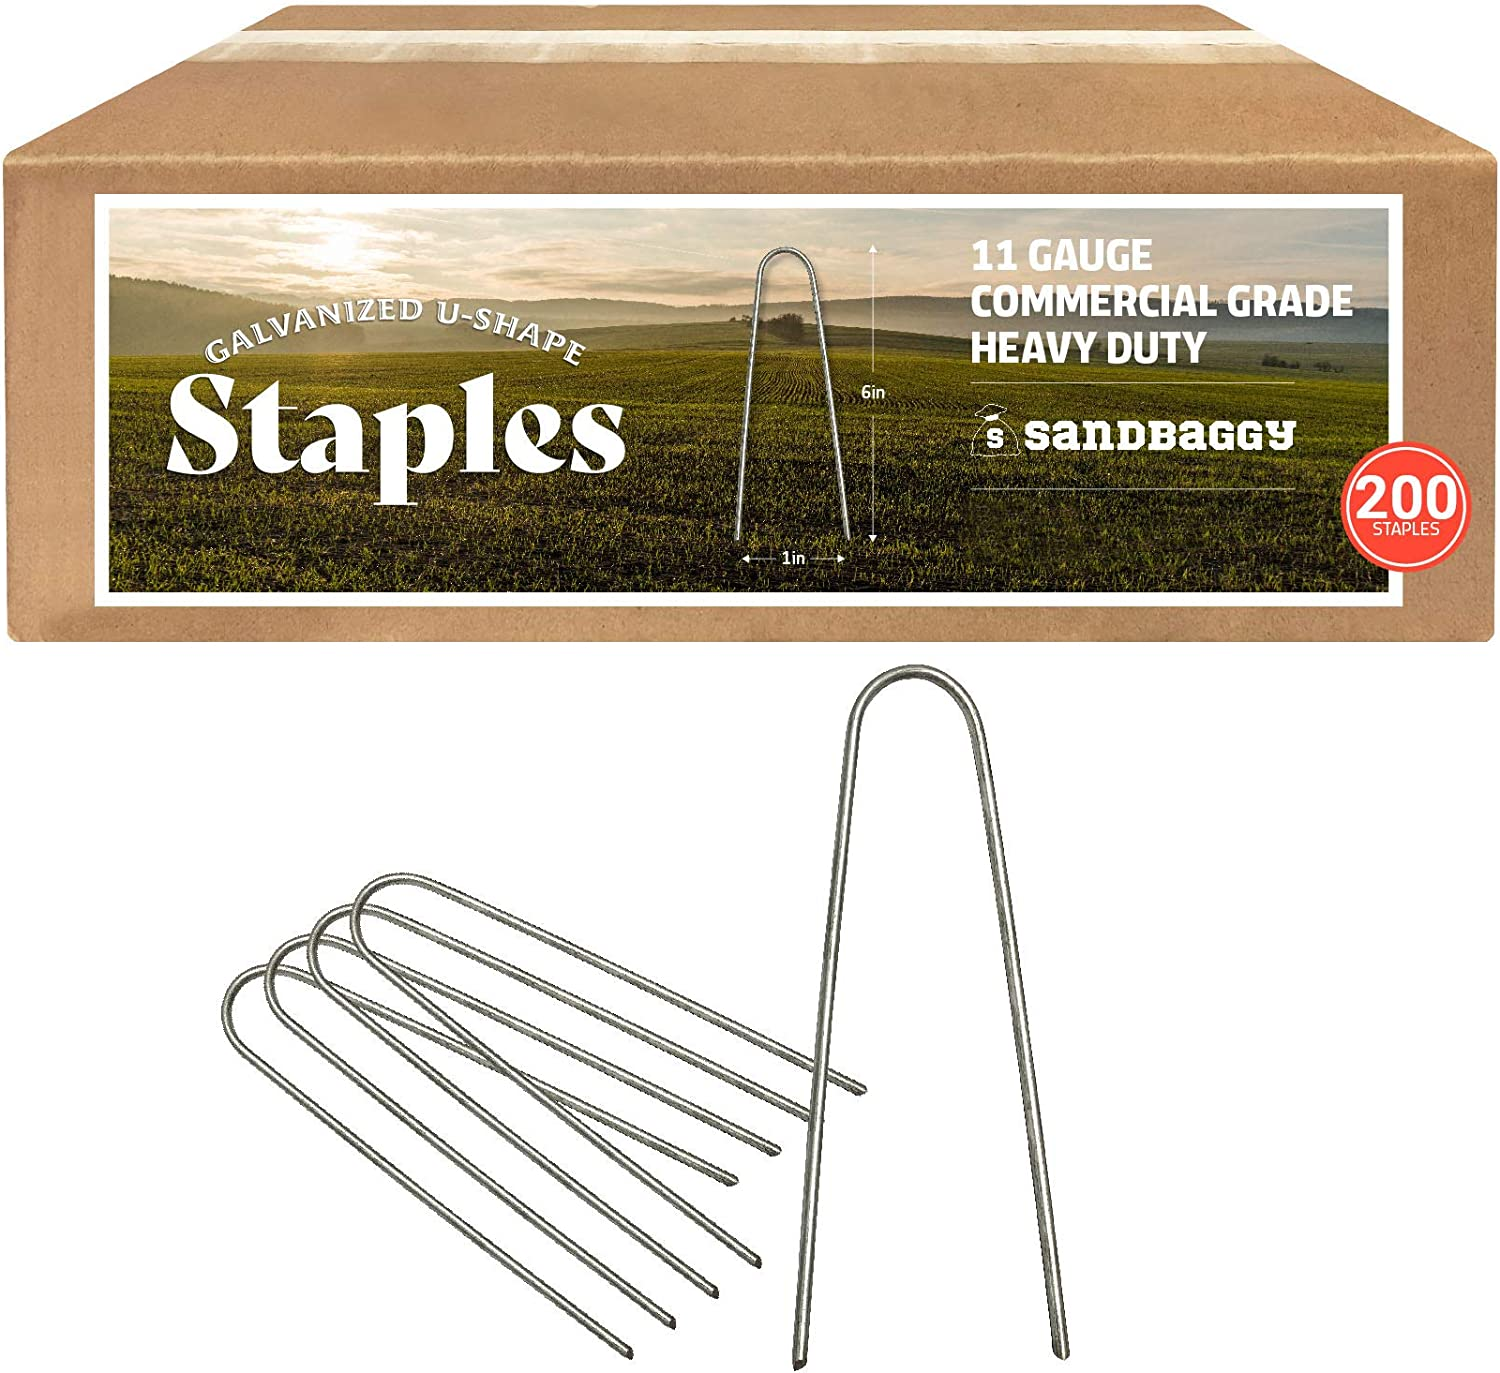 Sandbaggy Galvanized 6 Inch Round Top Landscape Staples ~ SOD Garden Stakes for Drip Irrigation Tubing & PVC Piping - Trusted by Farmers & Contractors Across USA (200 Staples)